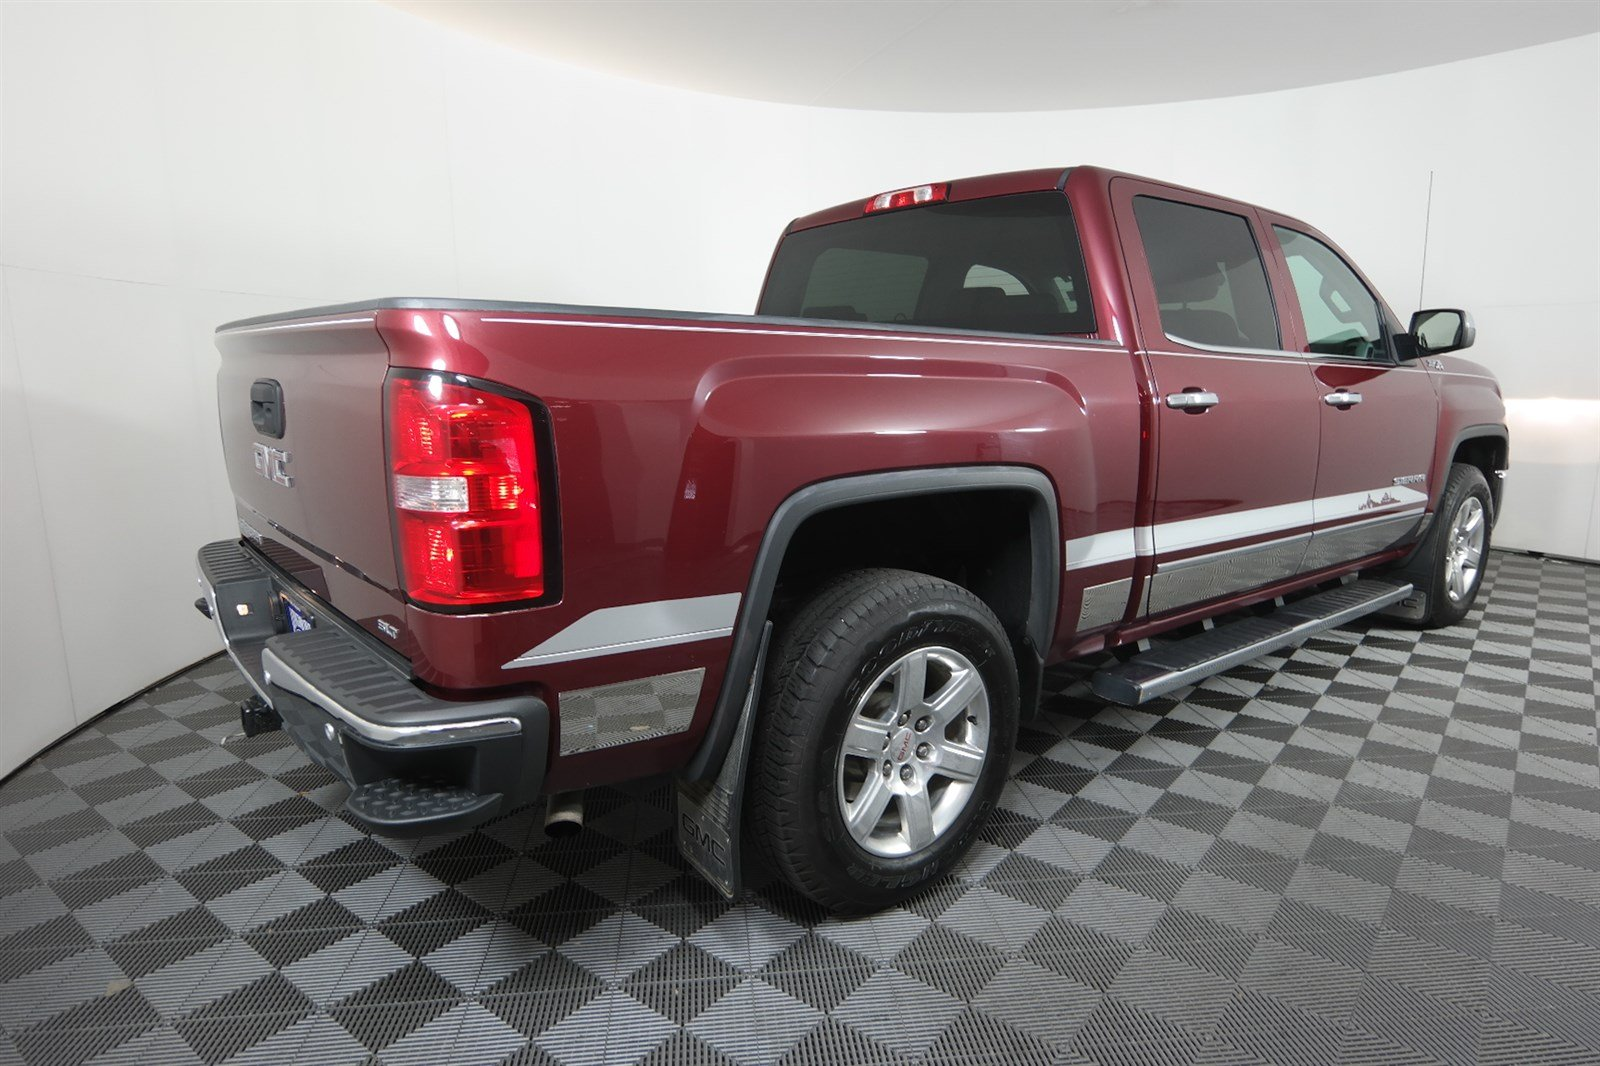 Pre Owned 2015 Gmc Sierra 1500 Slt Crew Cab Pickup In Longmont Dual Battery Kit